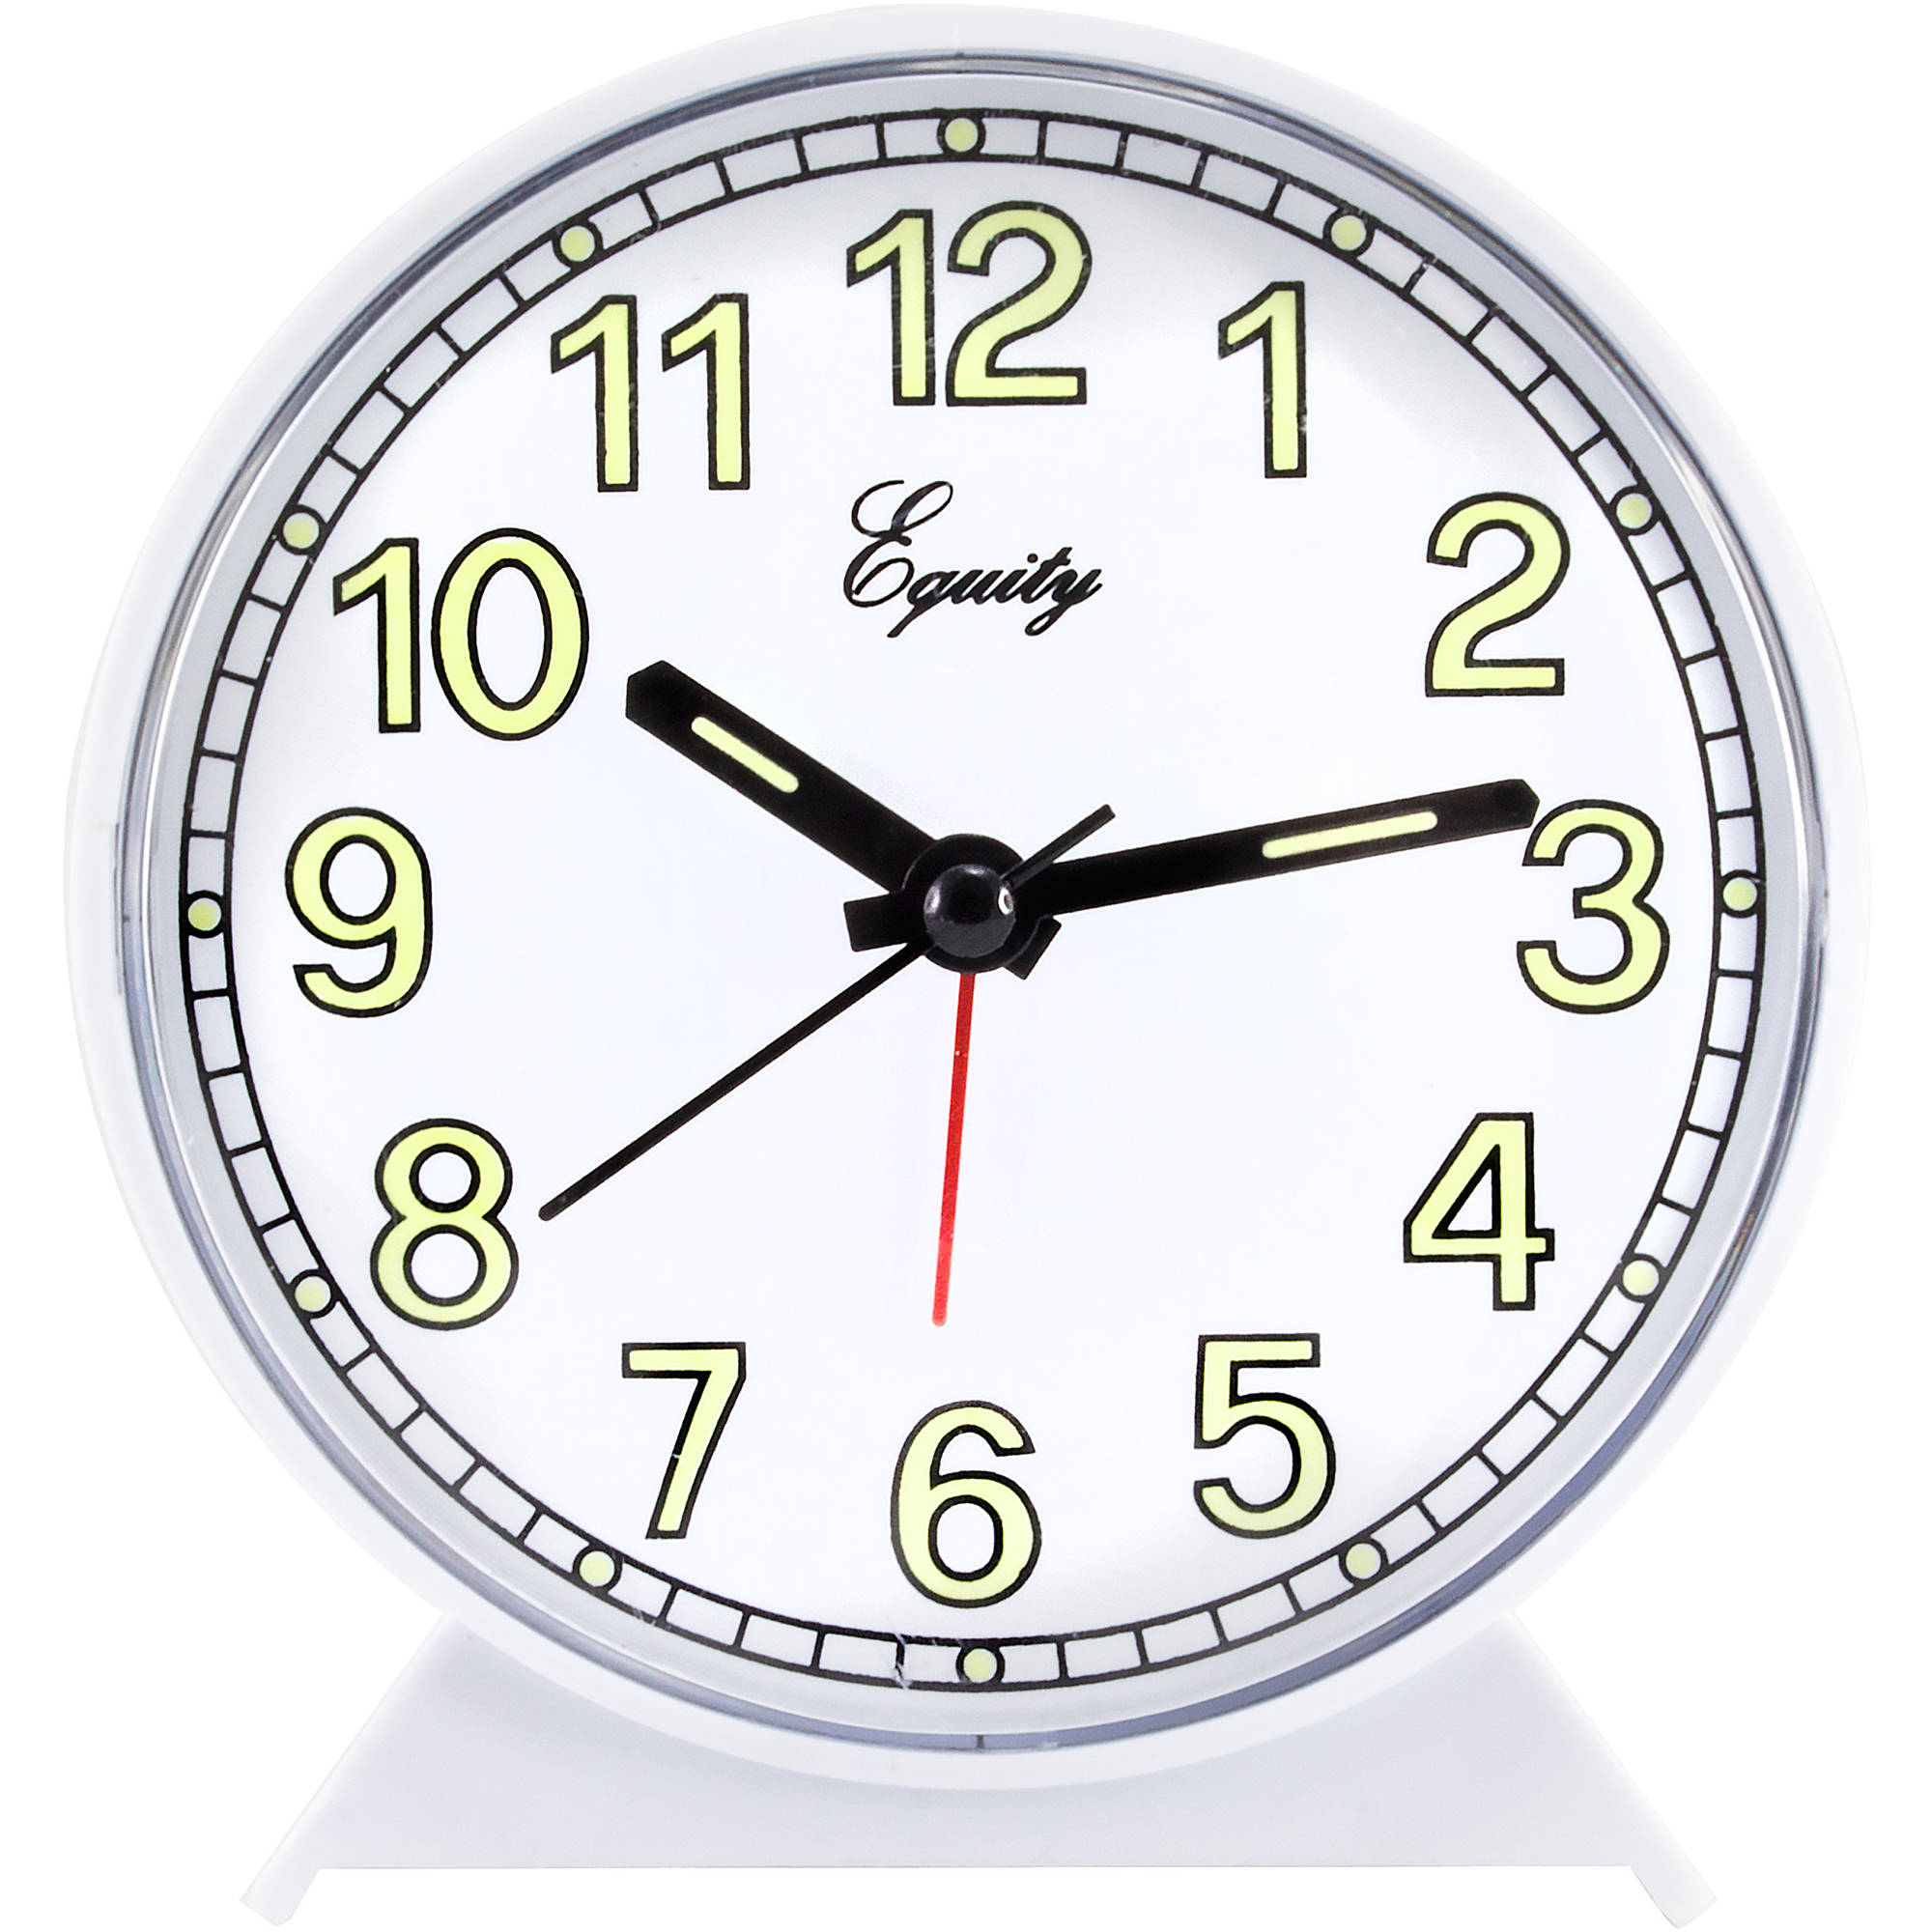 Equity by La Crosse Analog Quartz Alarm Clock